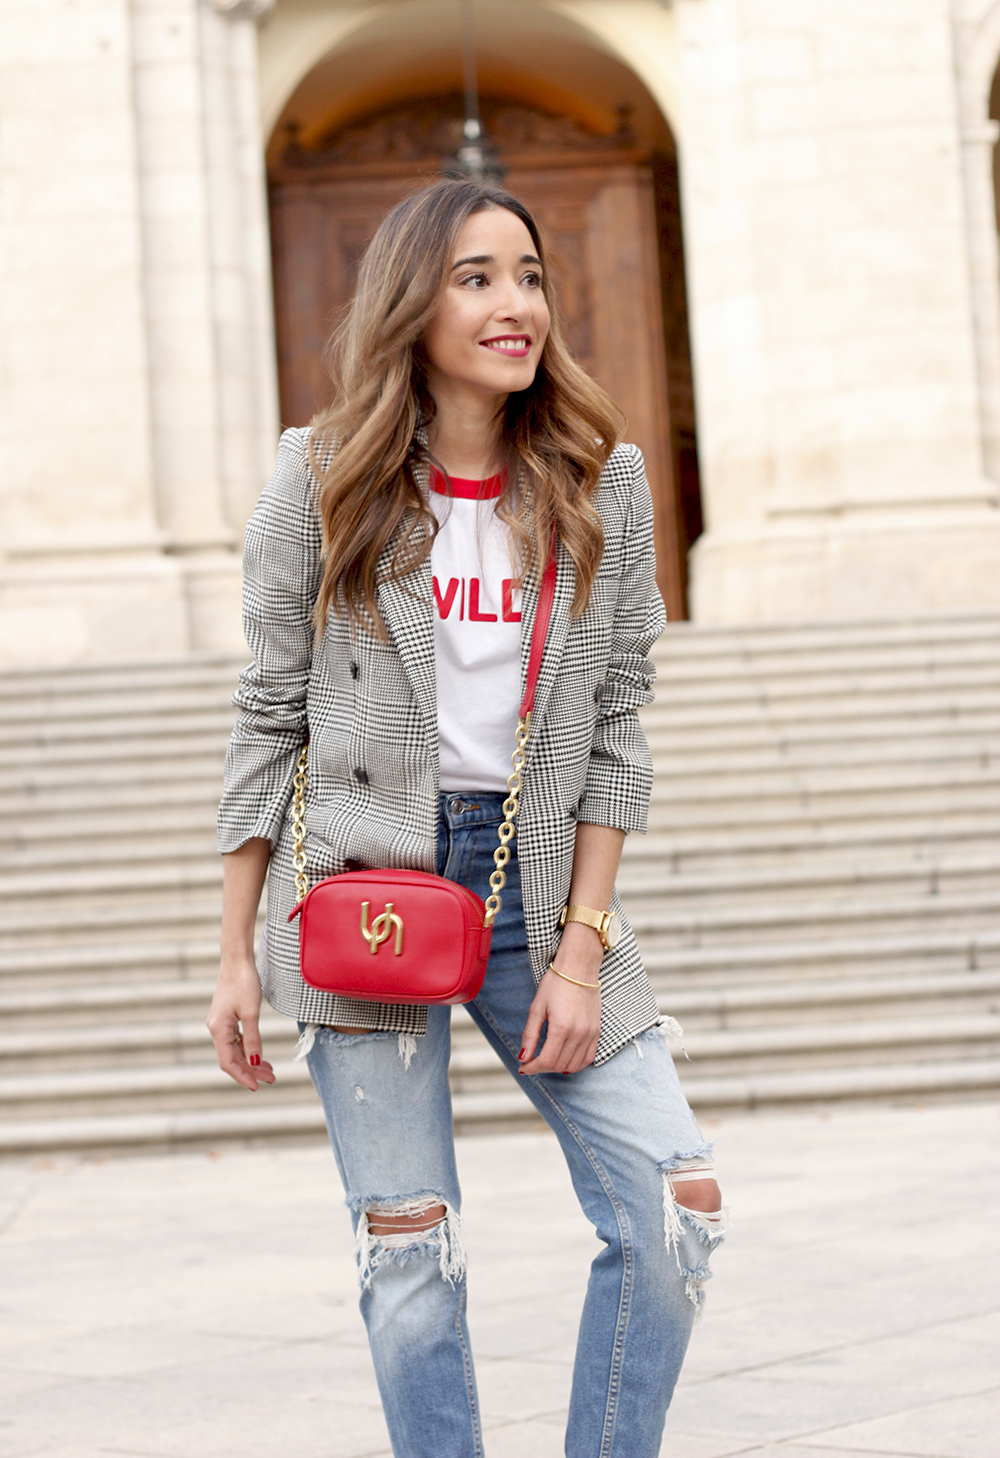 Prince of wales print blazer ripped jeans red heels uterqüe style trend fall outfit06